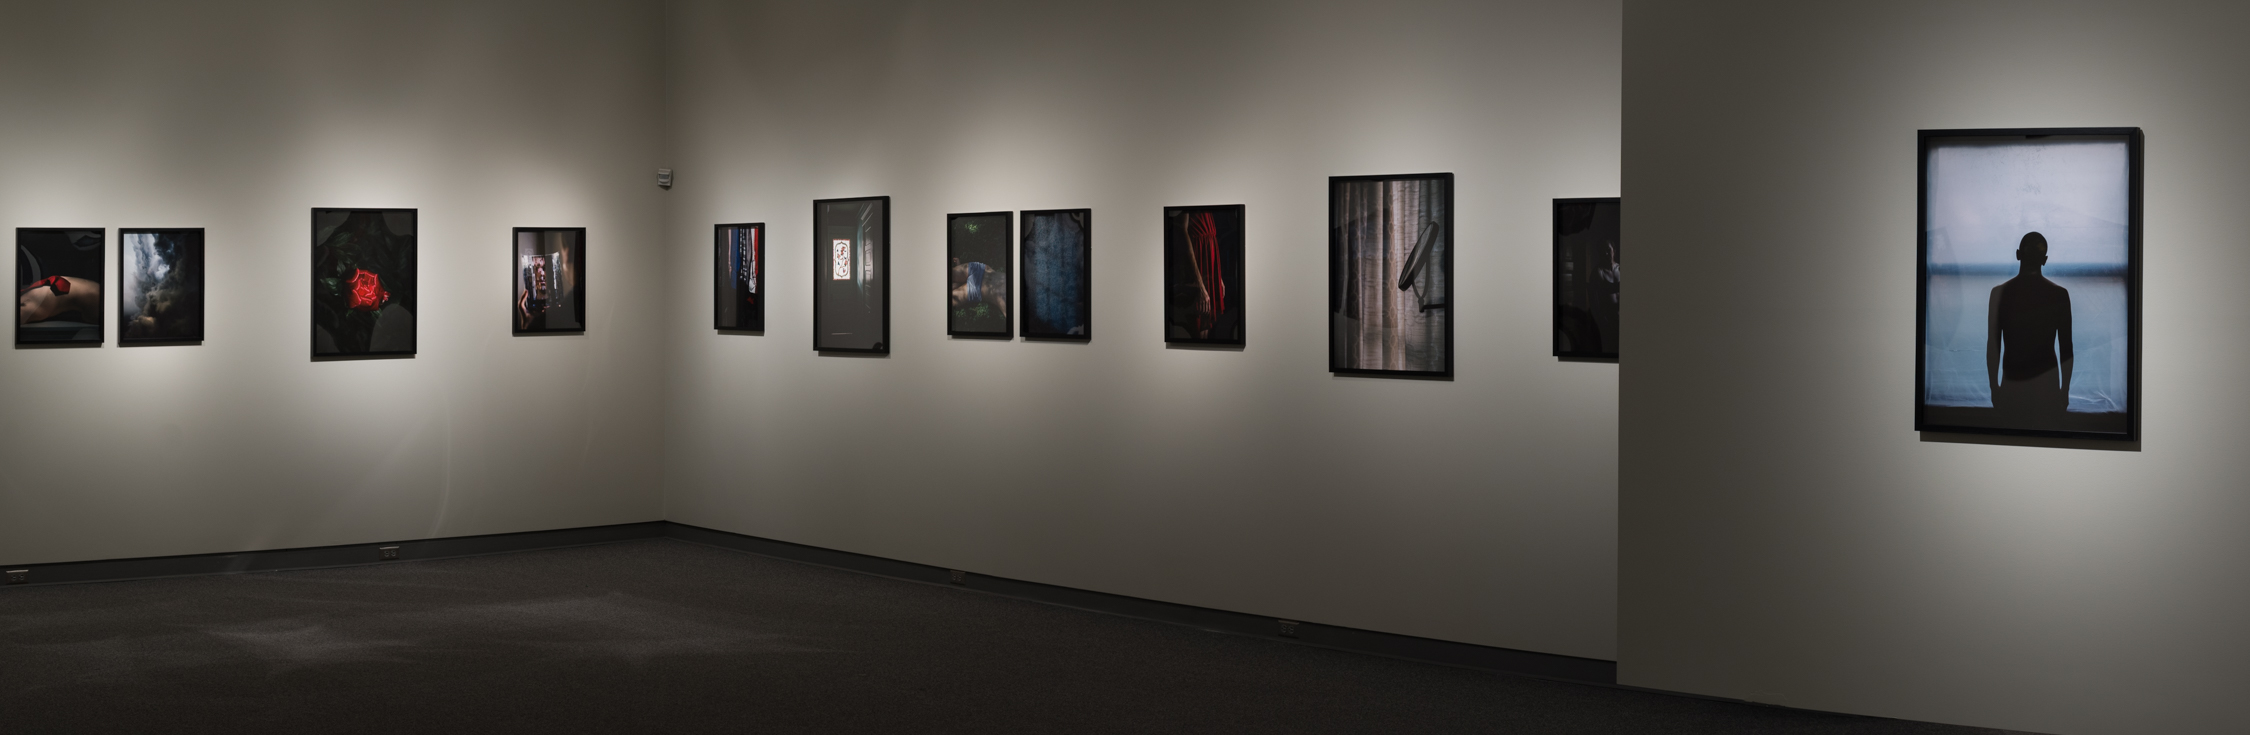 Installation view, The Rug's Topography